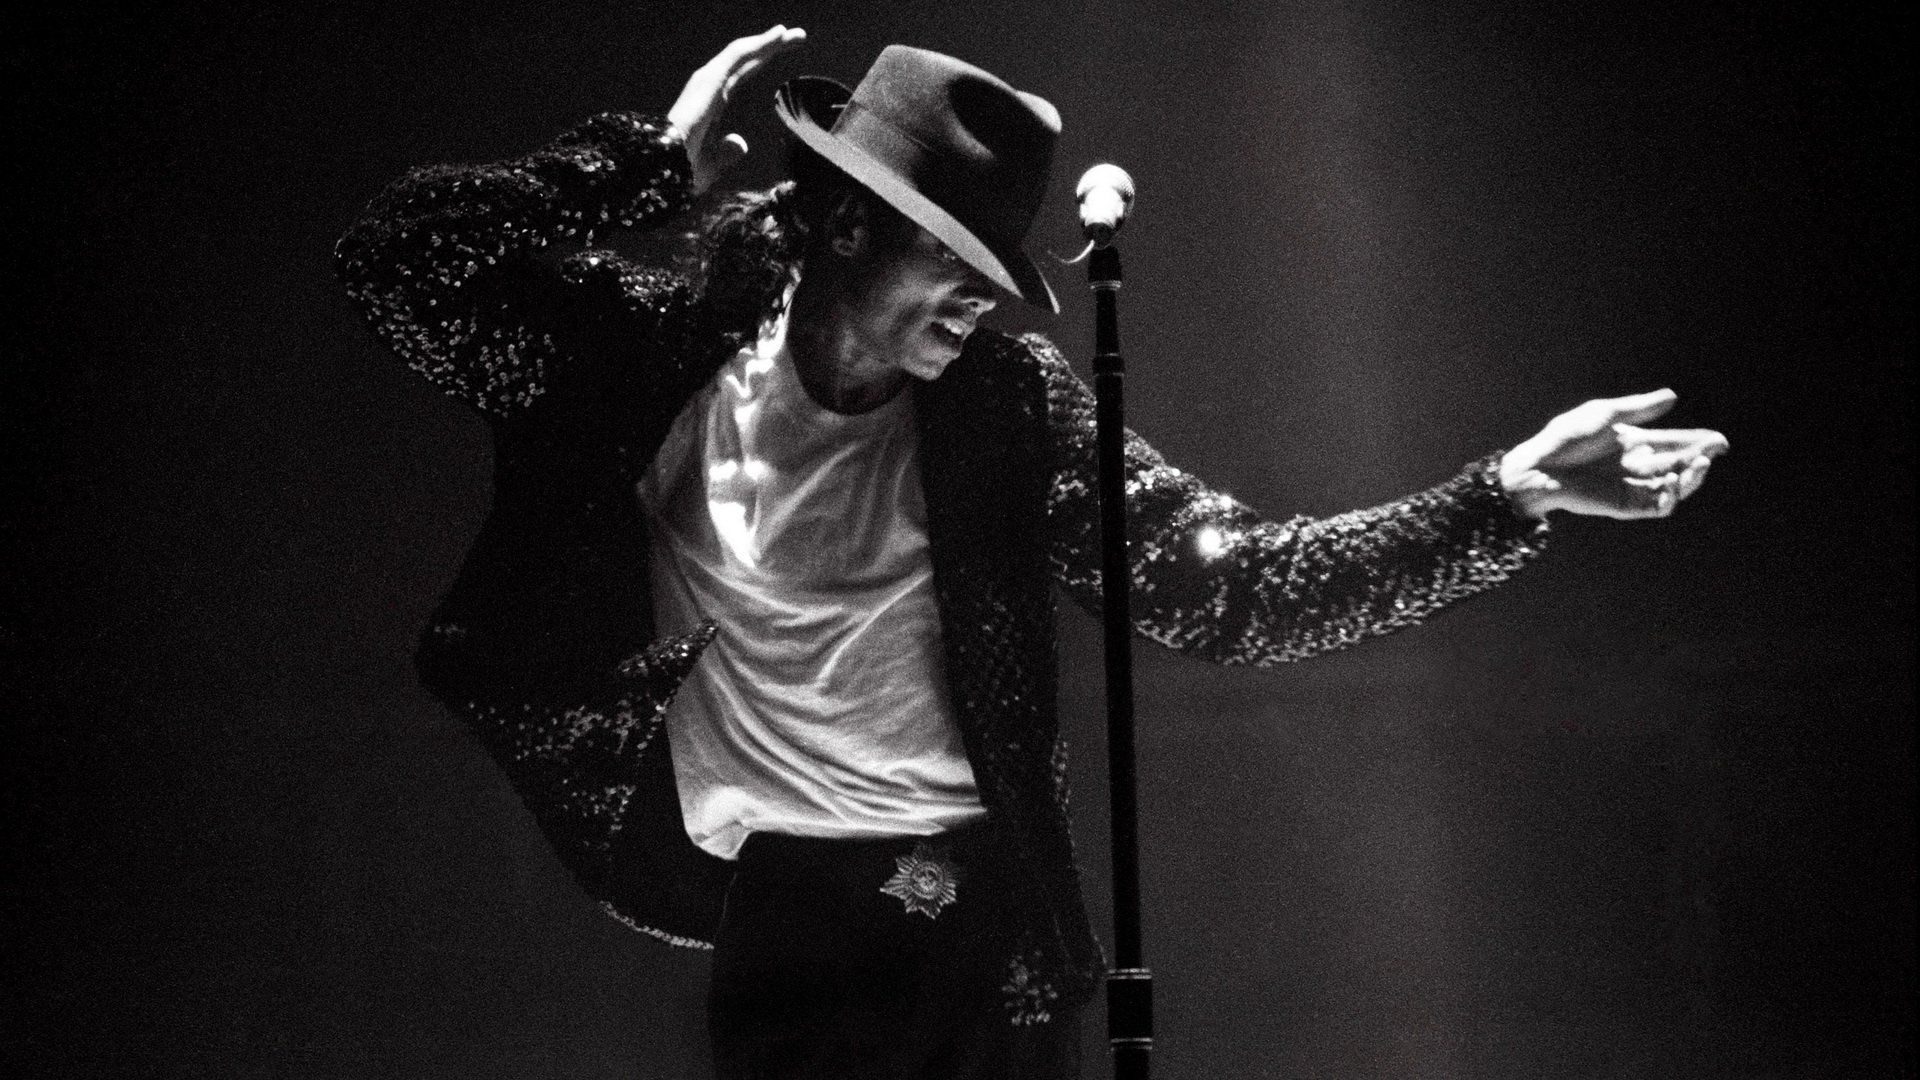 music michael jackson billie jean king of pop music dance wallpaper